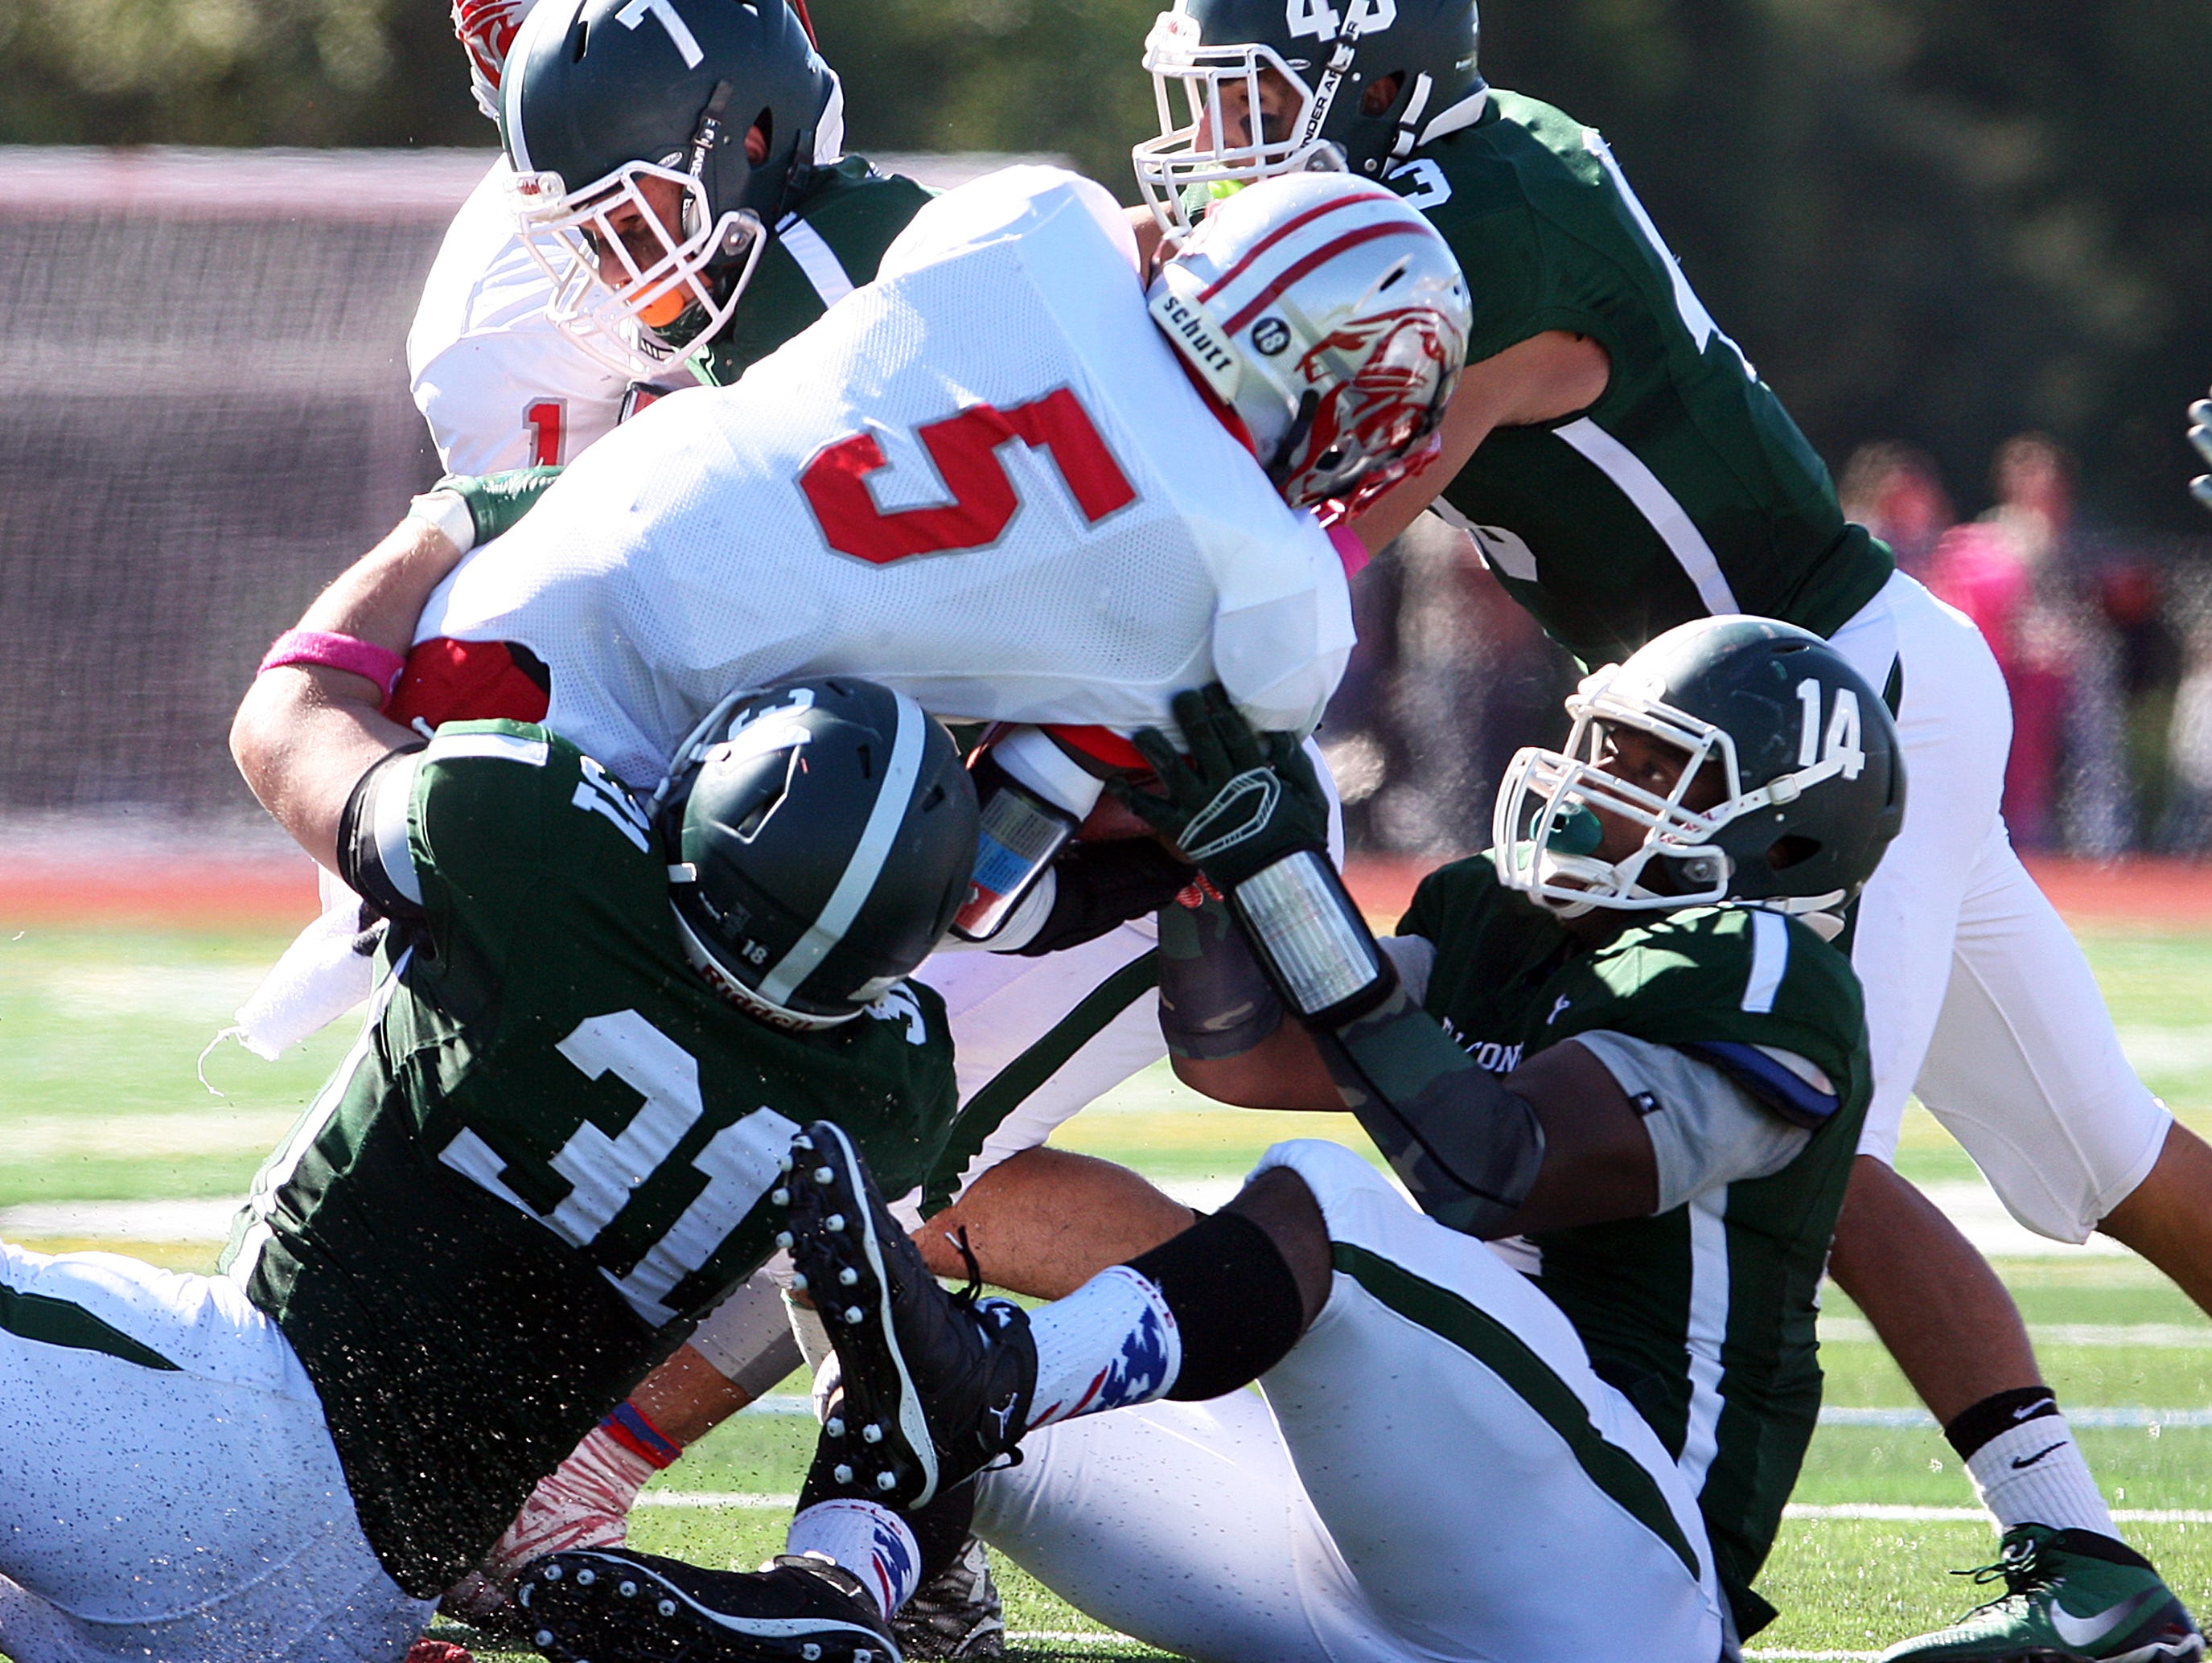 Action photos from the Perth Amboy High School at St. Joseph football game held at St. Joseph's new turf field in Metuhen on Saturday October 10, 2015. Here Perth Amboy's # 5 (center)- Hakeem Guthrie is taken down by St. Joseph's # 31 (left)- Luke Yakely, # 14 (right)- Roderic Javier, # 7 Mitch Epstein and # 43 Joe Papa for a loss of yardage during the 1st half of play.